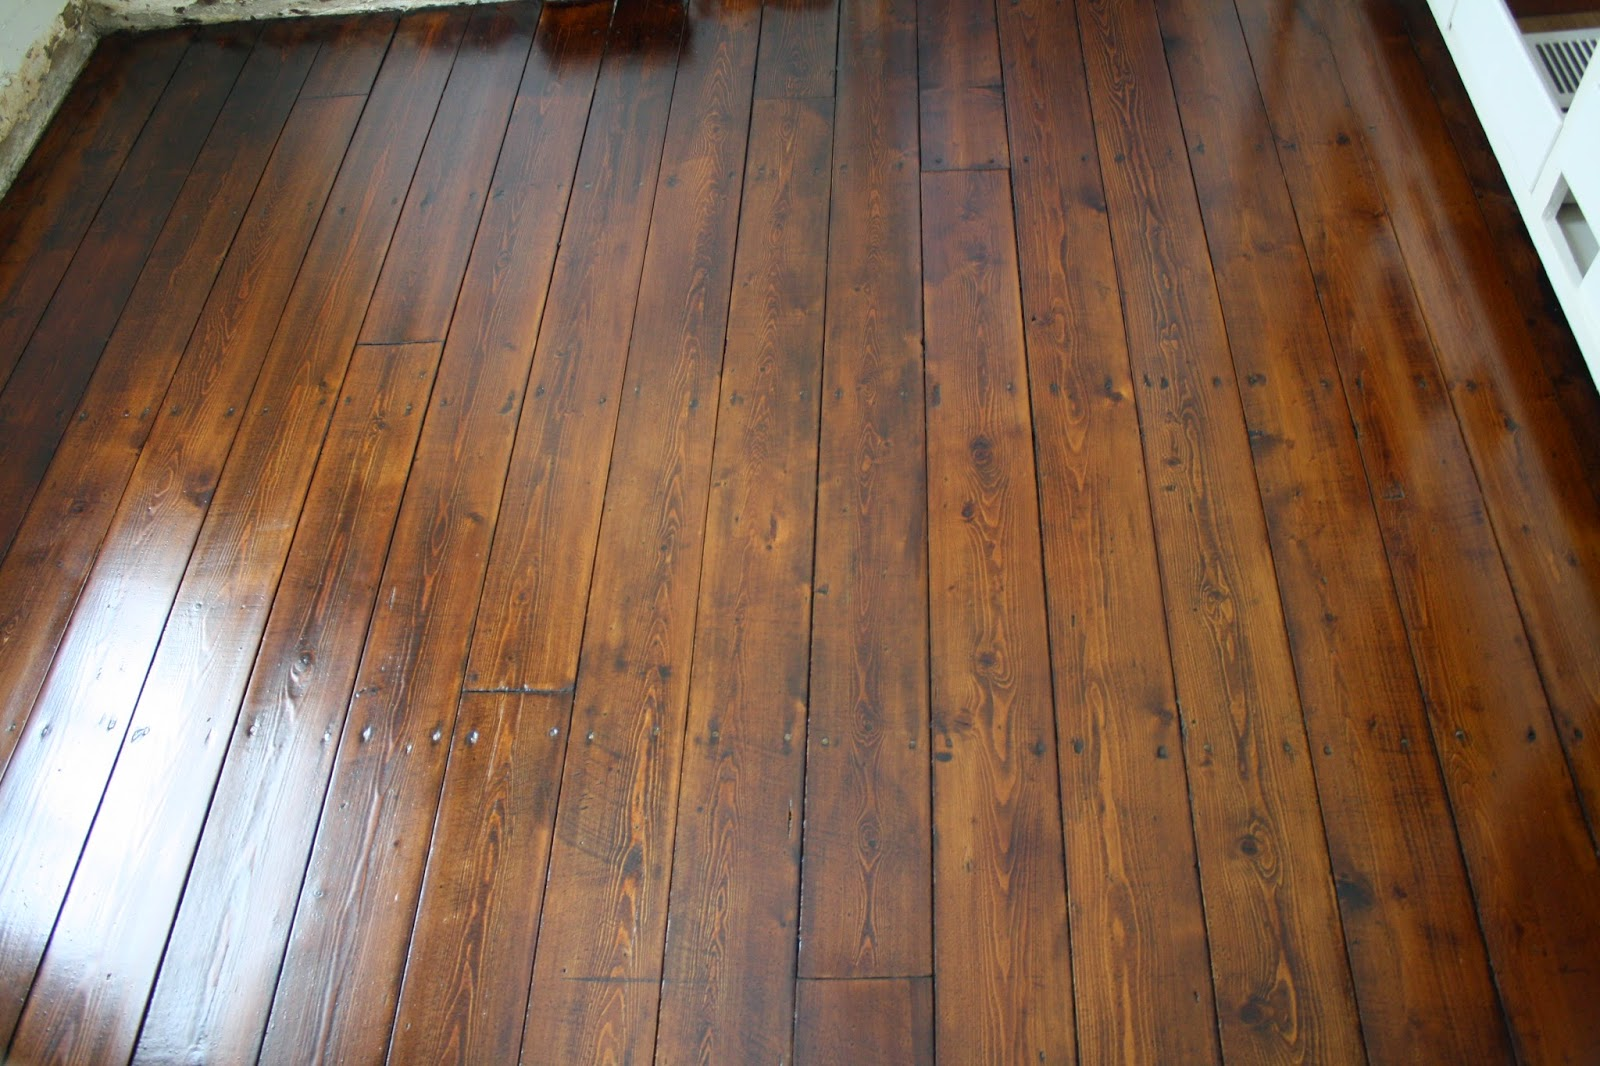 Restoring wood floors